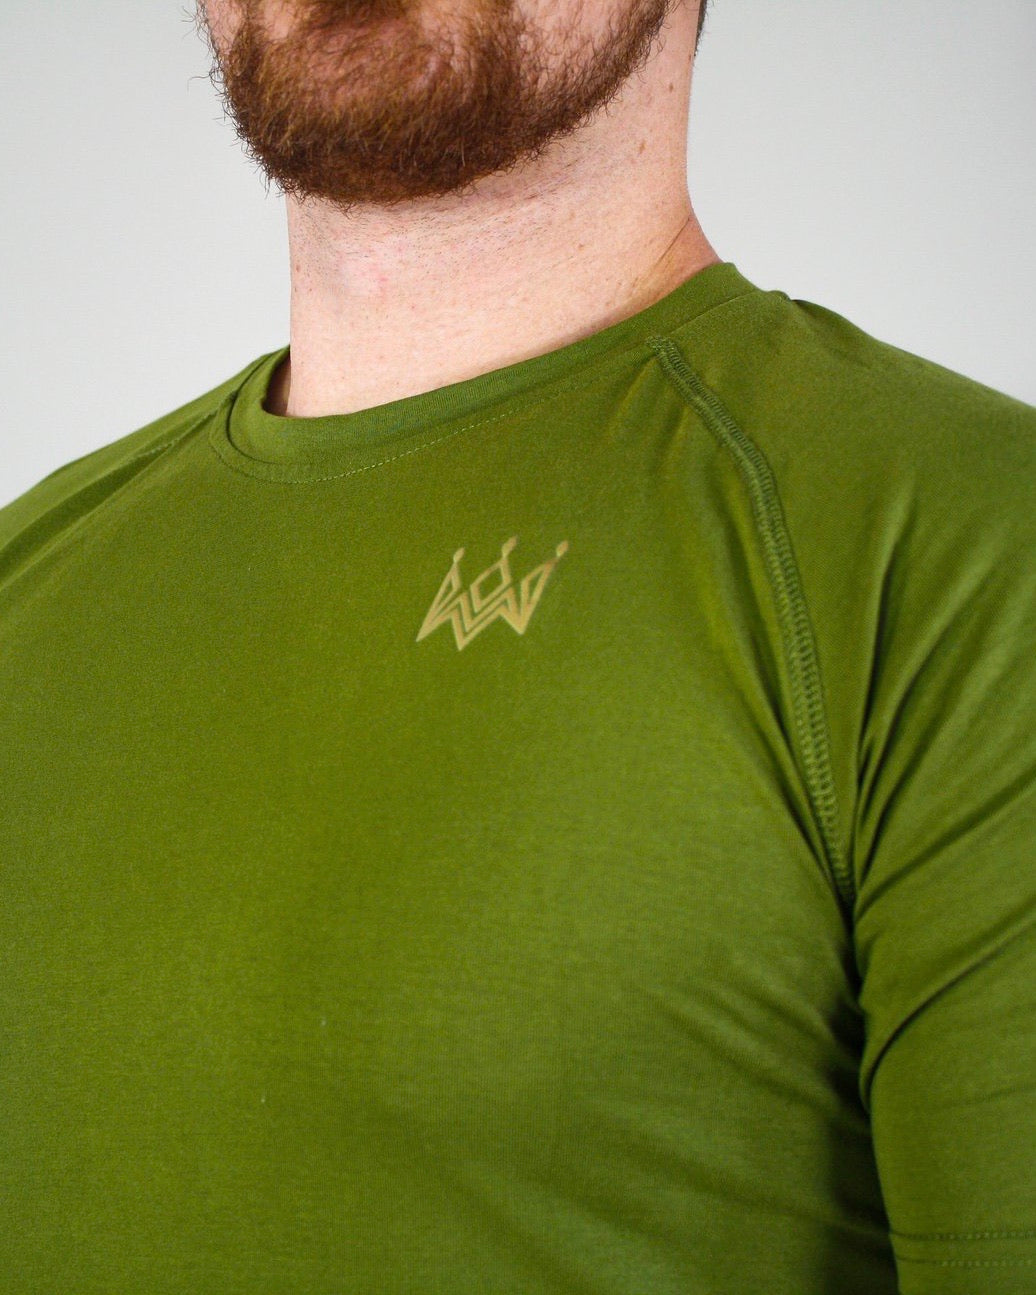 Tunic Performance Shirt - Olive Green